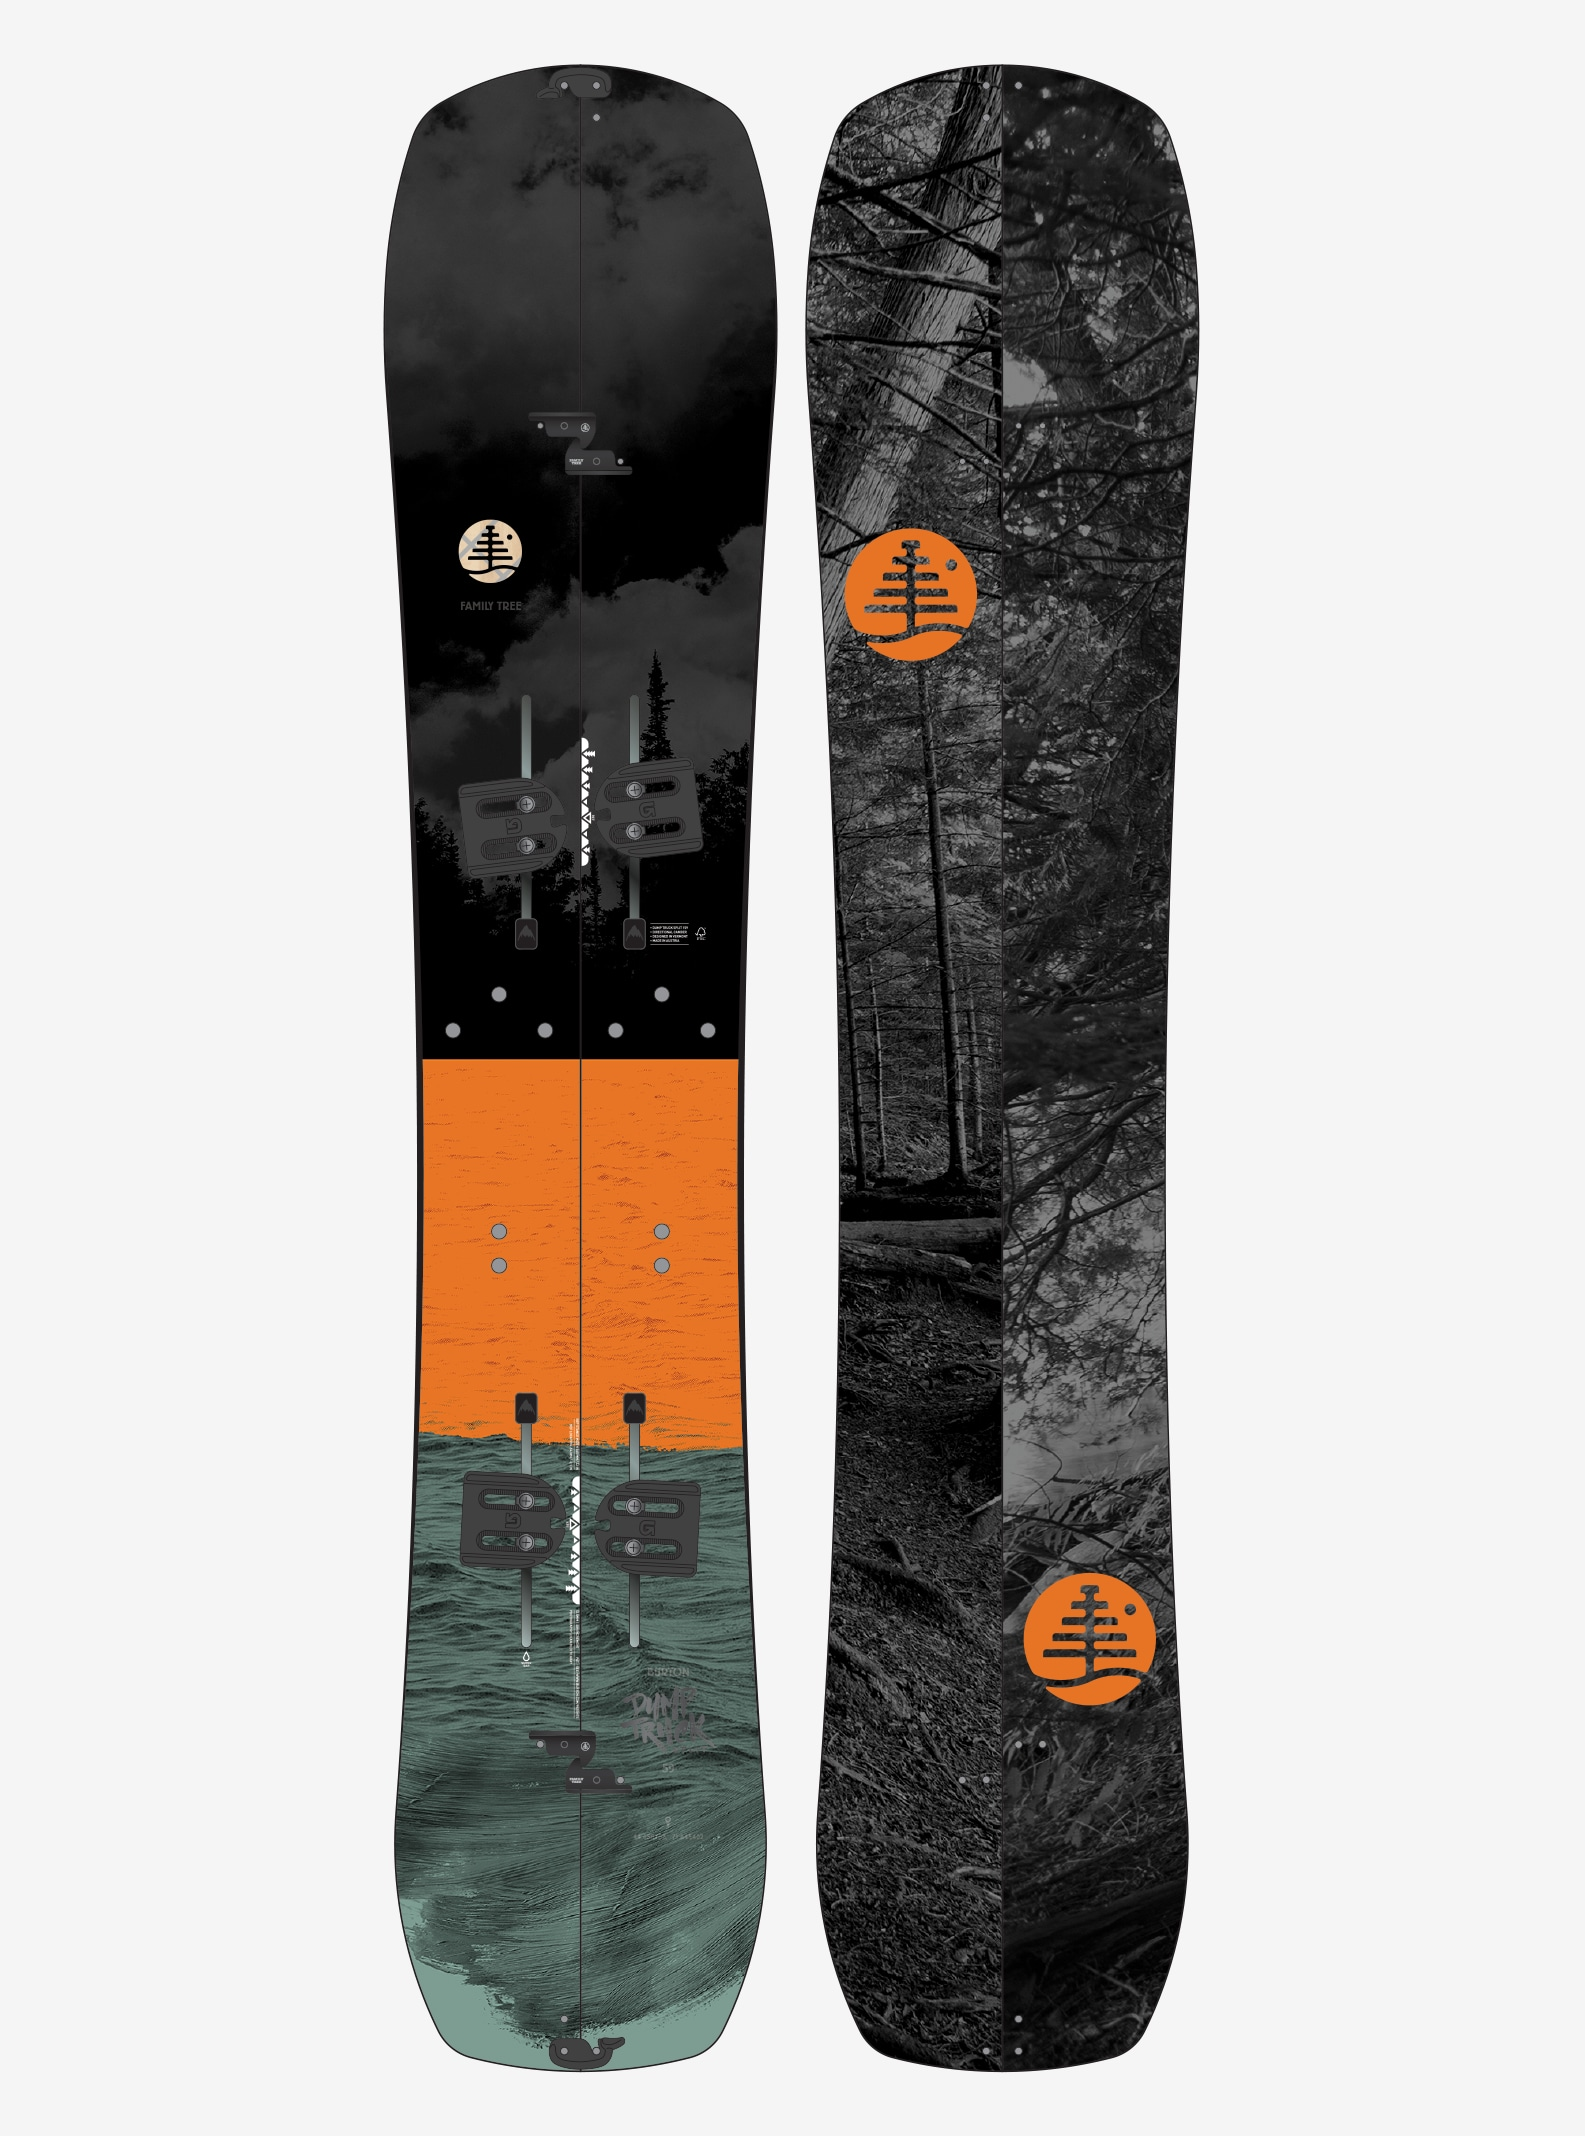 Men's Burton Family Tree Dump Truck Split Snowboard shown in 159